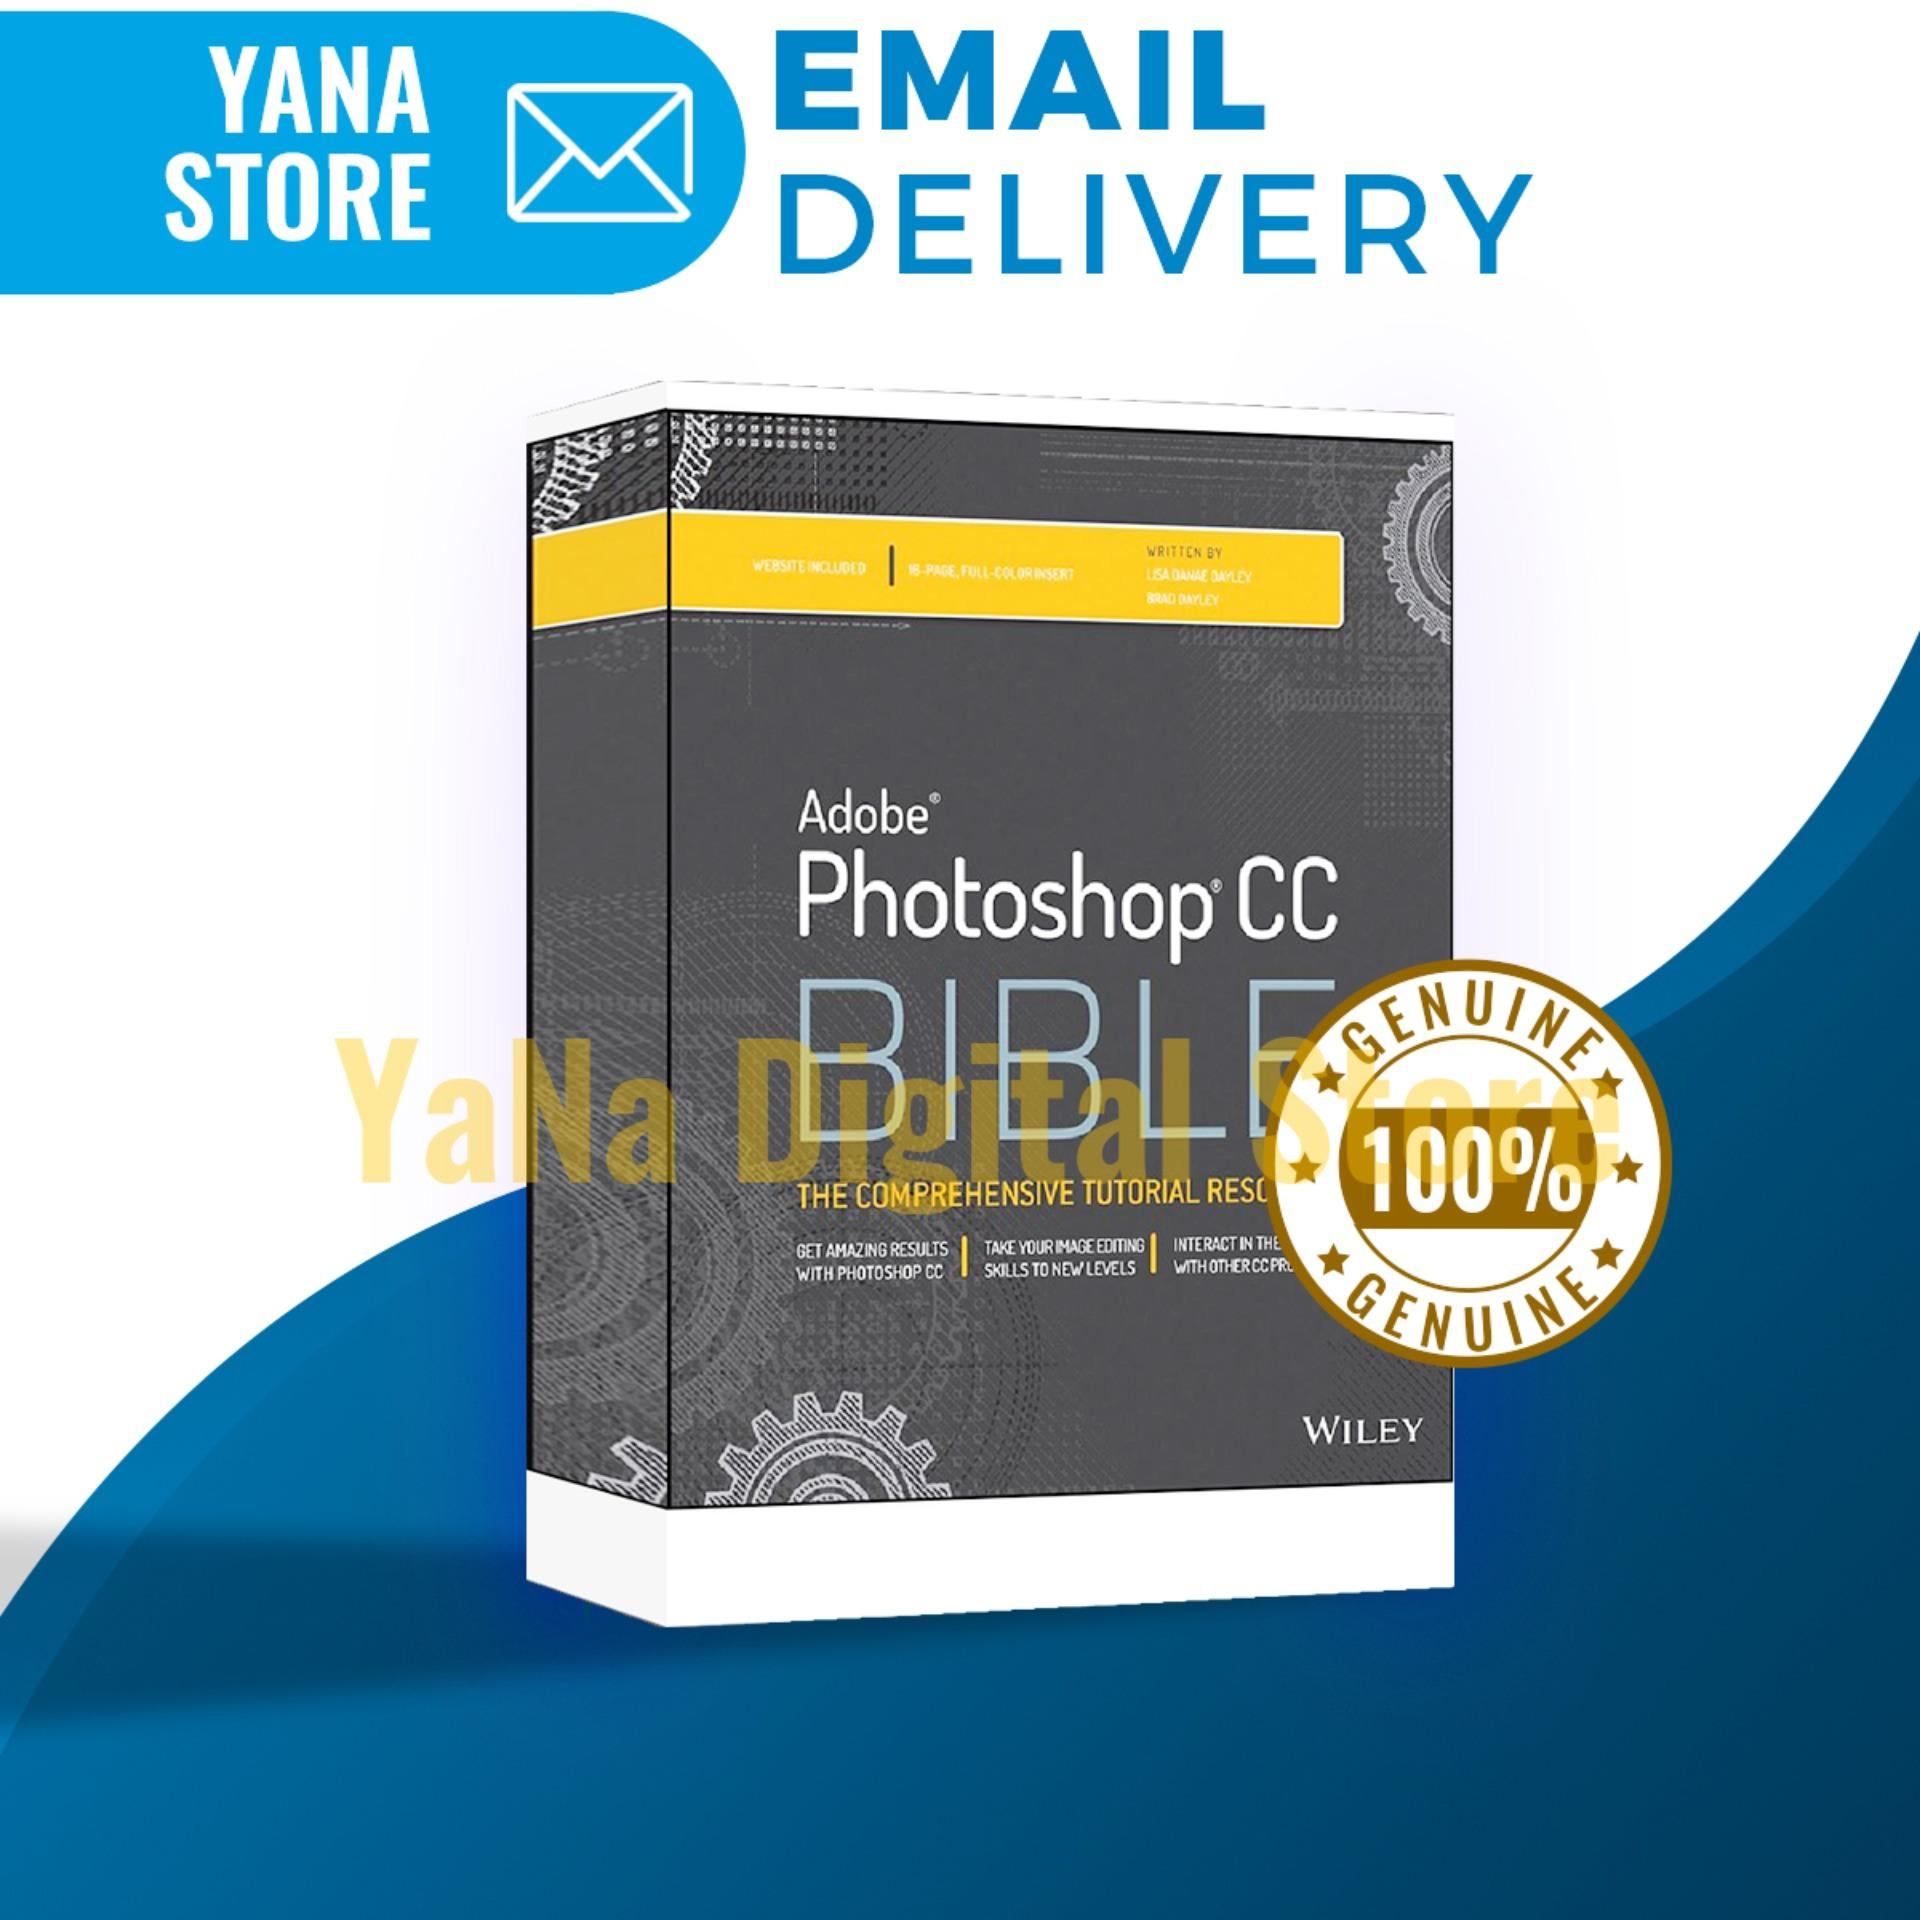 Adobe Photoshop CC Bible - PDF - Instant Email Delivery